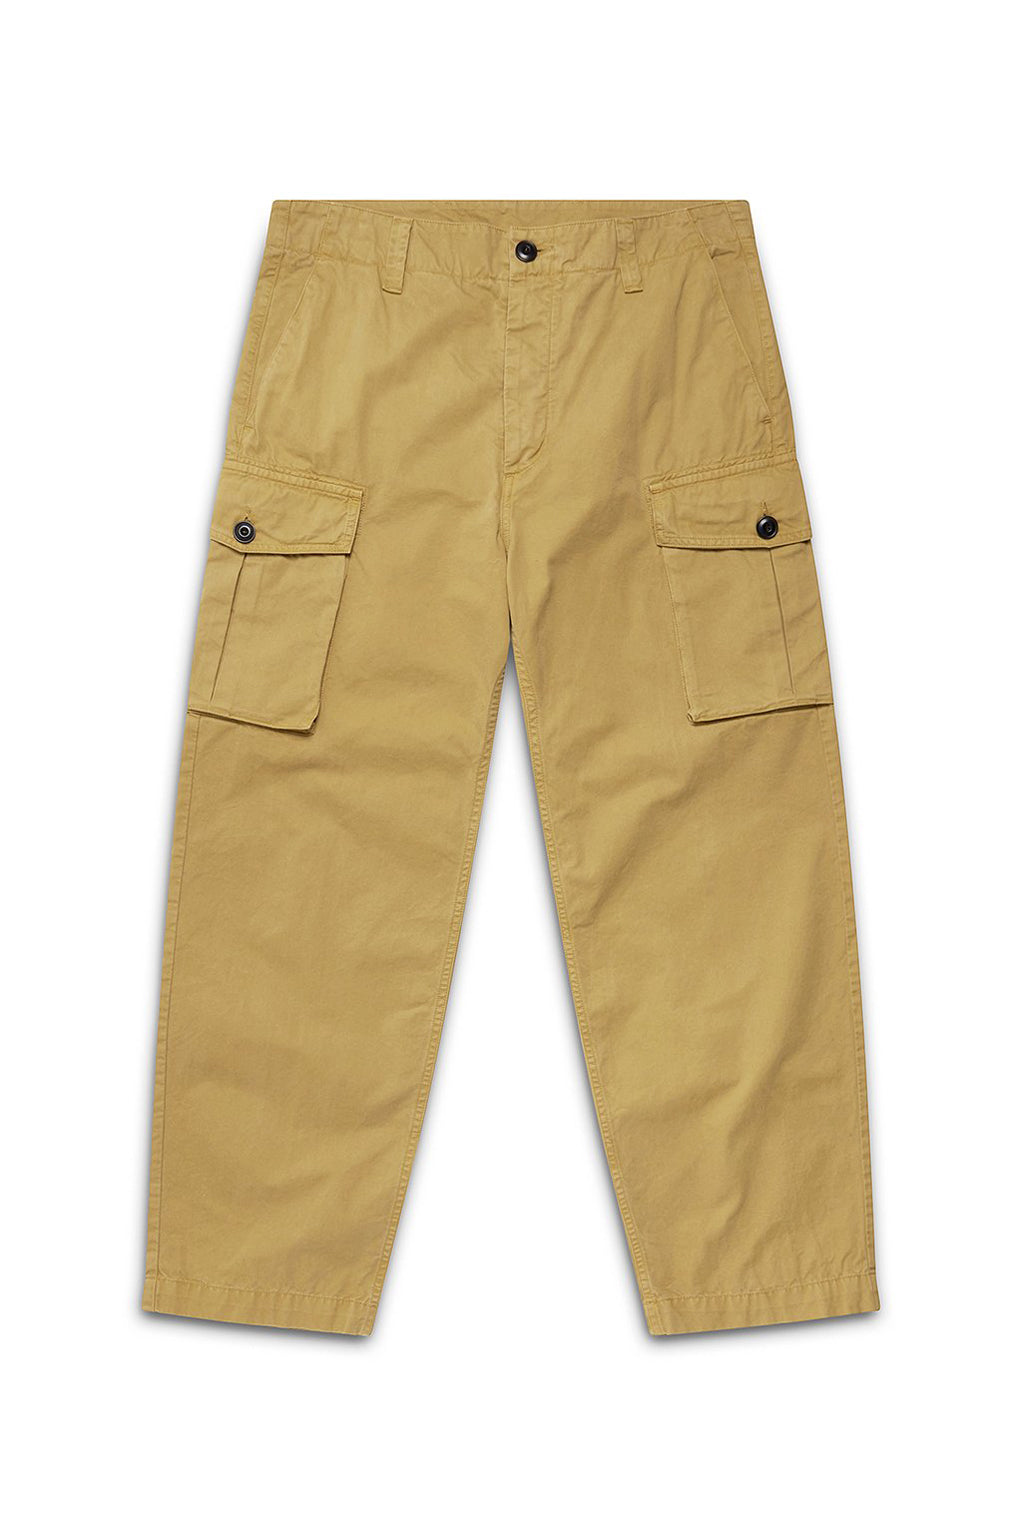 ALBAM Loose Fitting Combat Trouser, Dijon